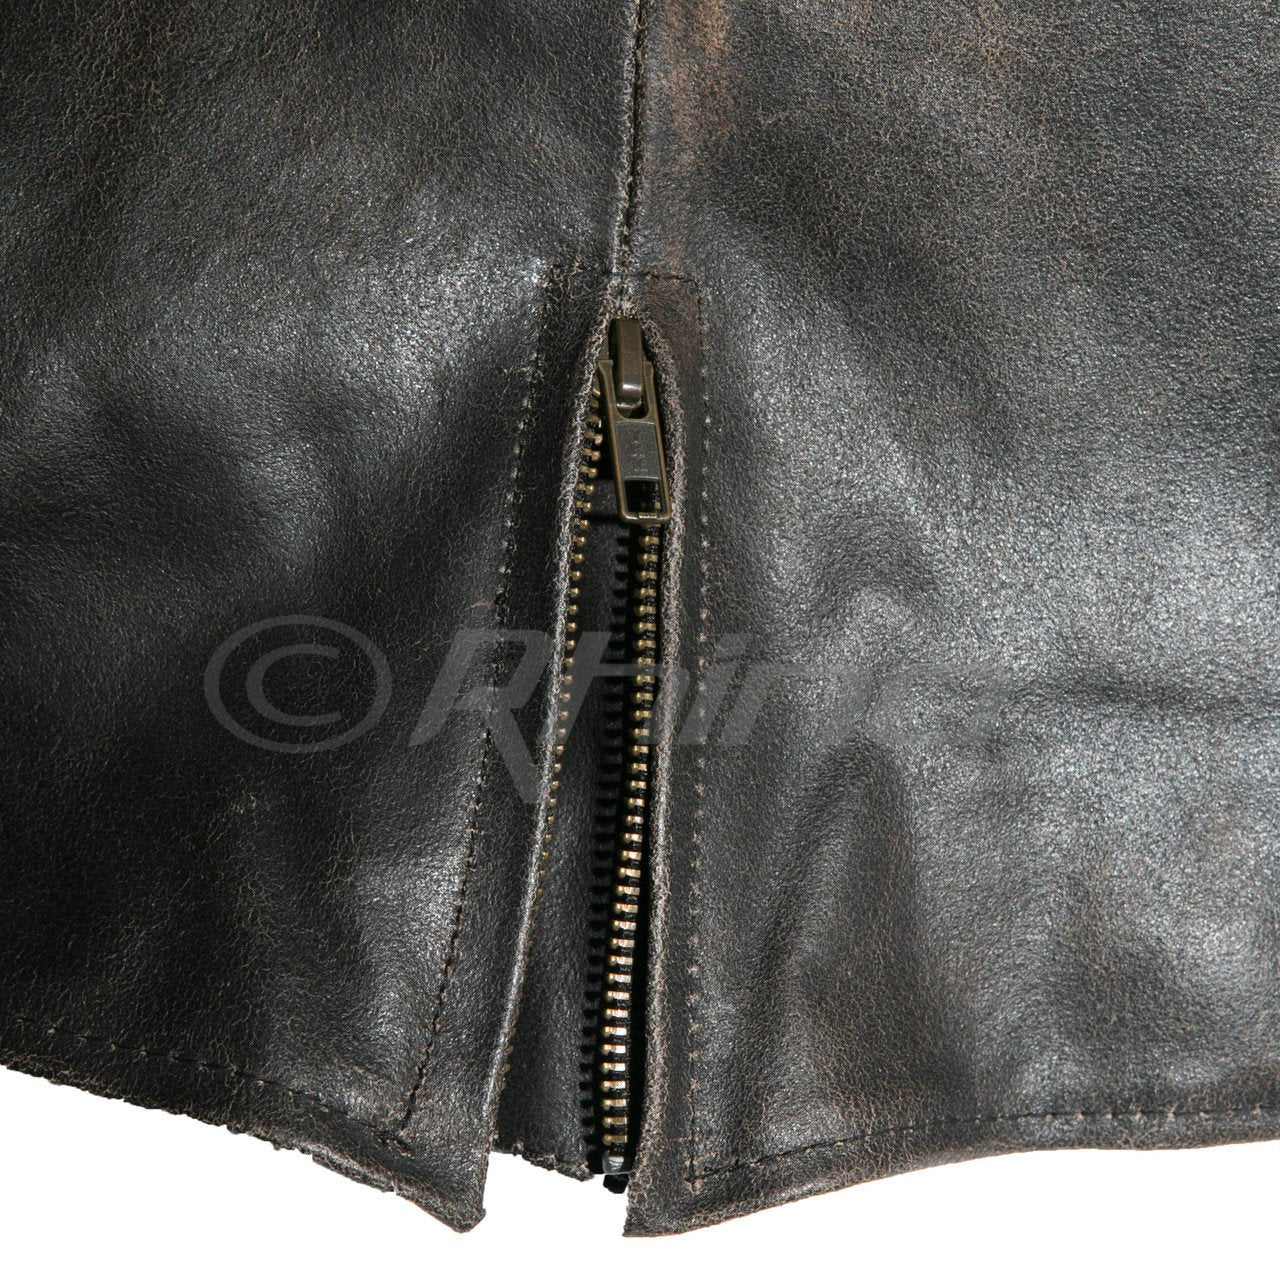 Sbp Page 61 Street Bike Parts Two Brothers Ducati Monster 696 Black Series Dual Slip On Exhaust Systems Topaz Womens Dark Brown Vintage Distressed Leather Motorcycle Jacket